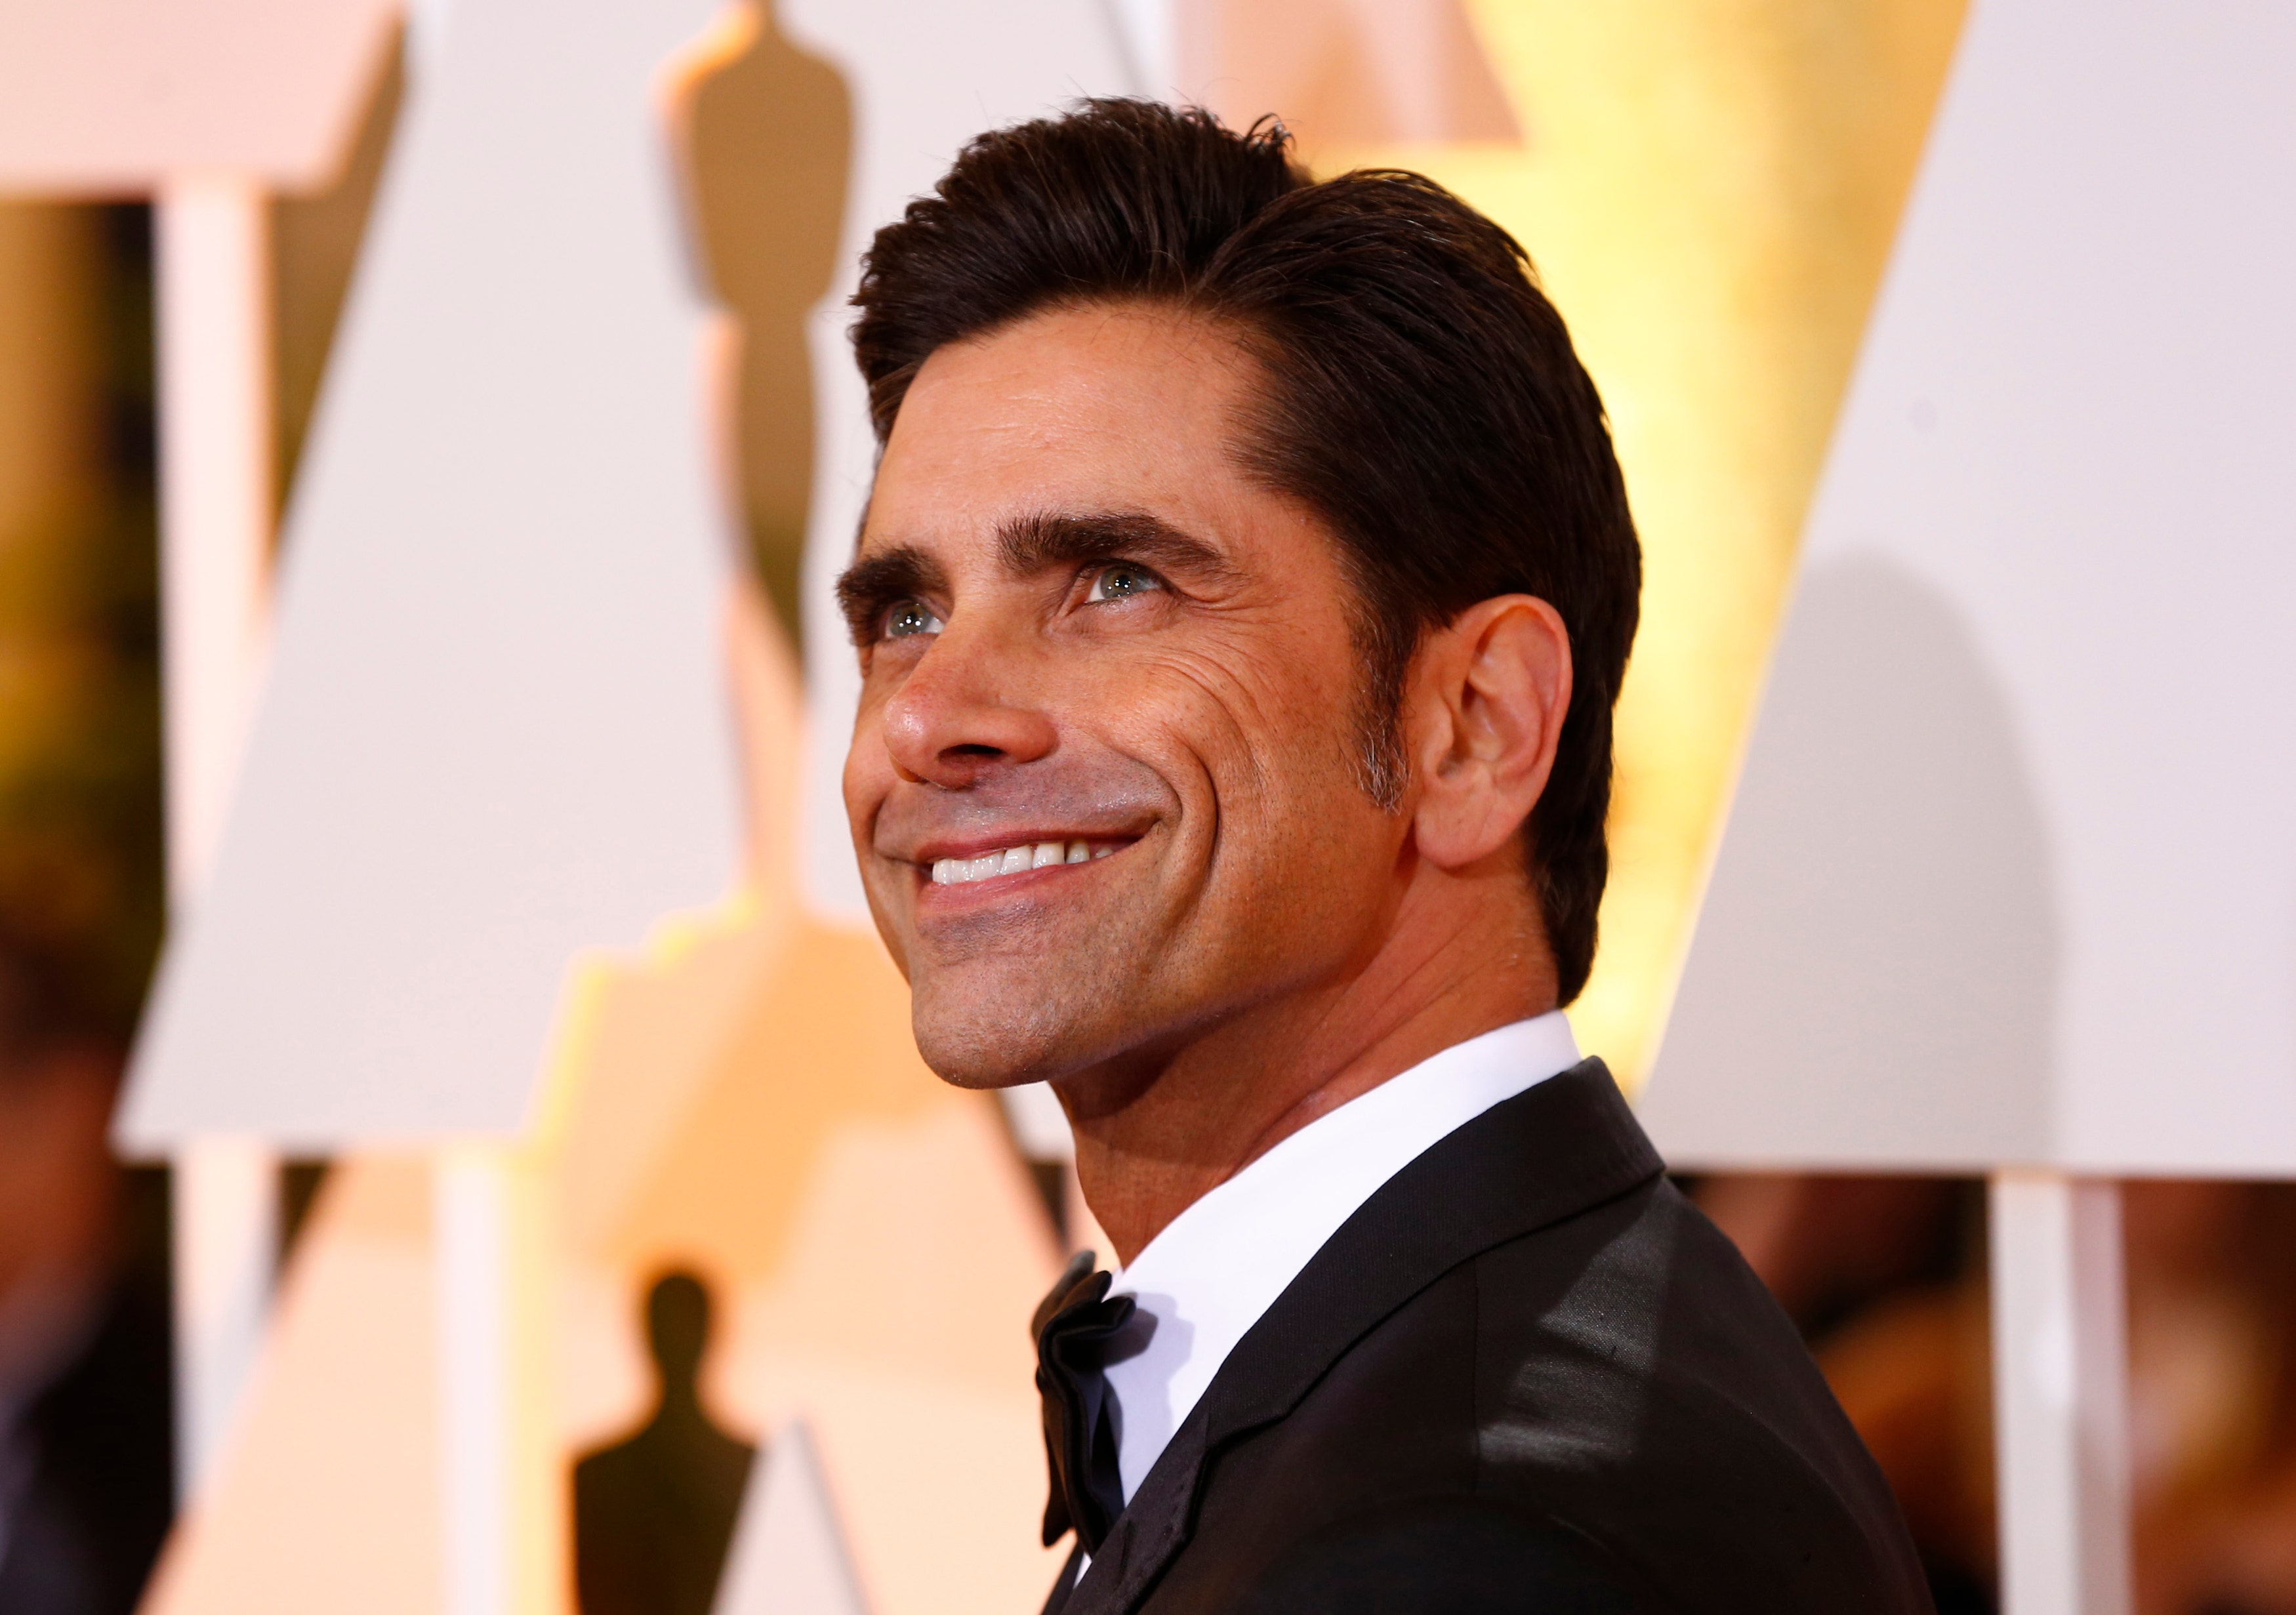 John Stamos revisits 'Full House' home, fans fail to see him | Fox ...